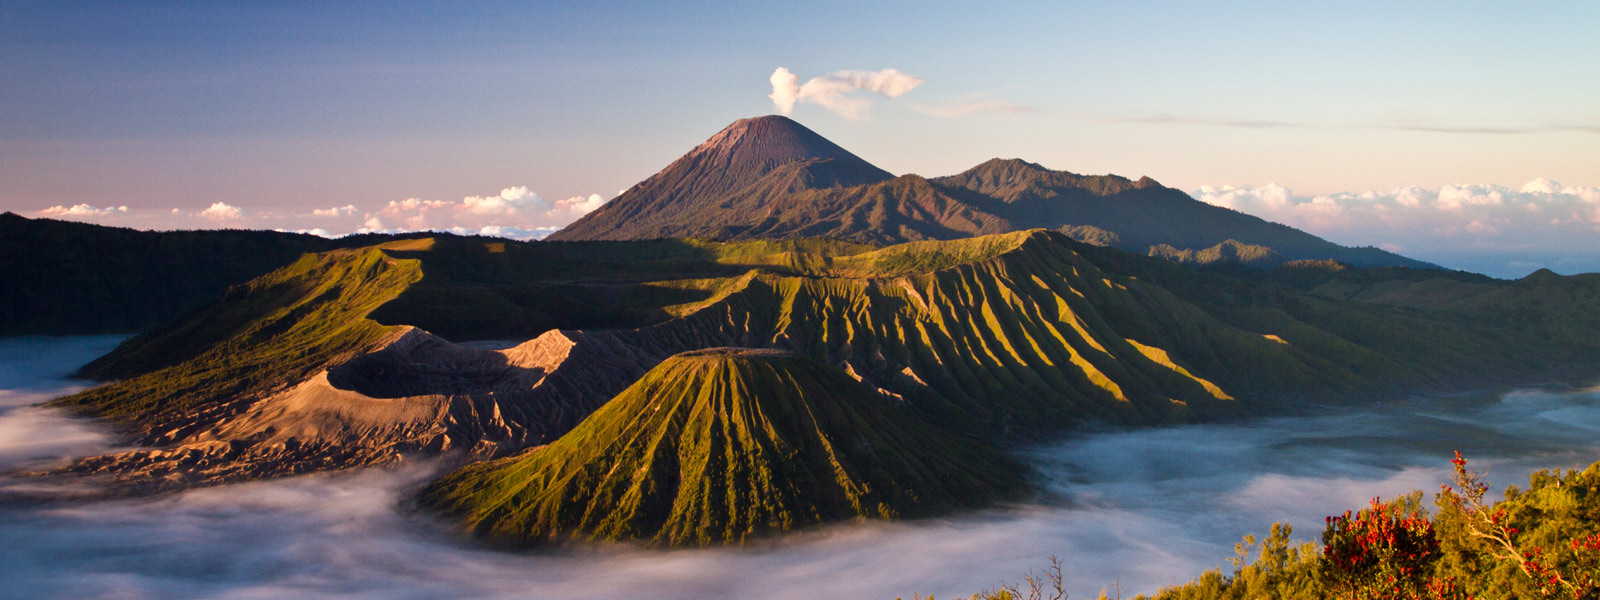 Indonesien, Mount Bromo